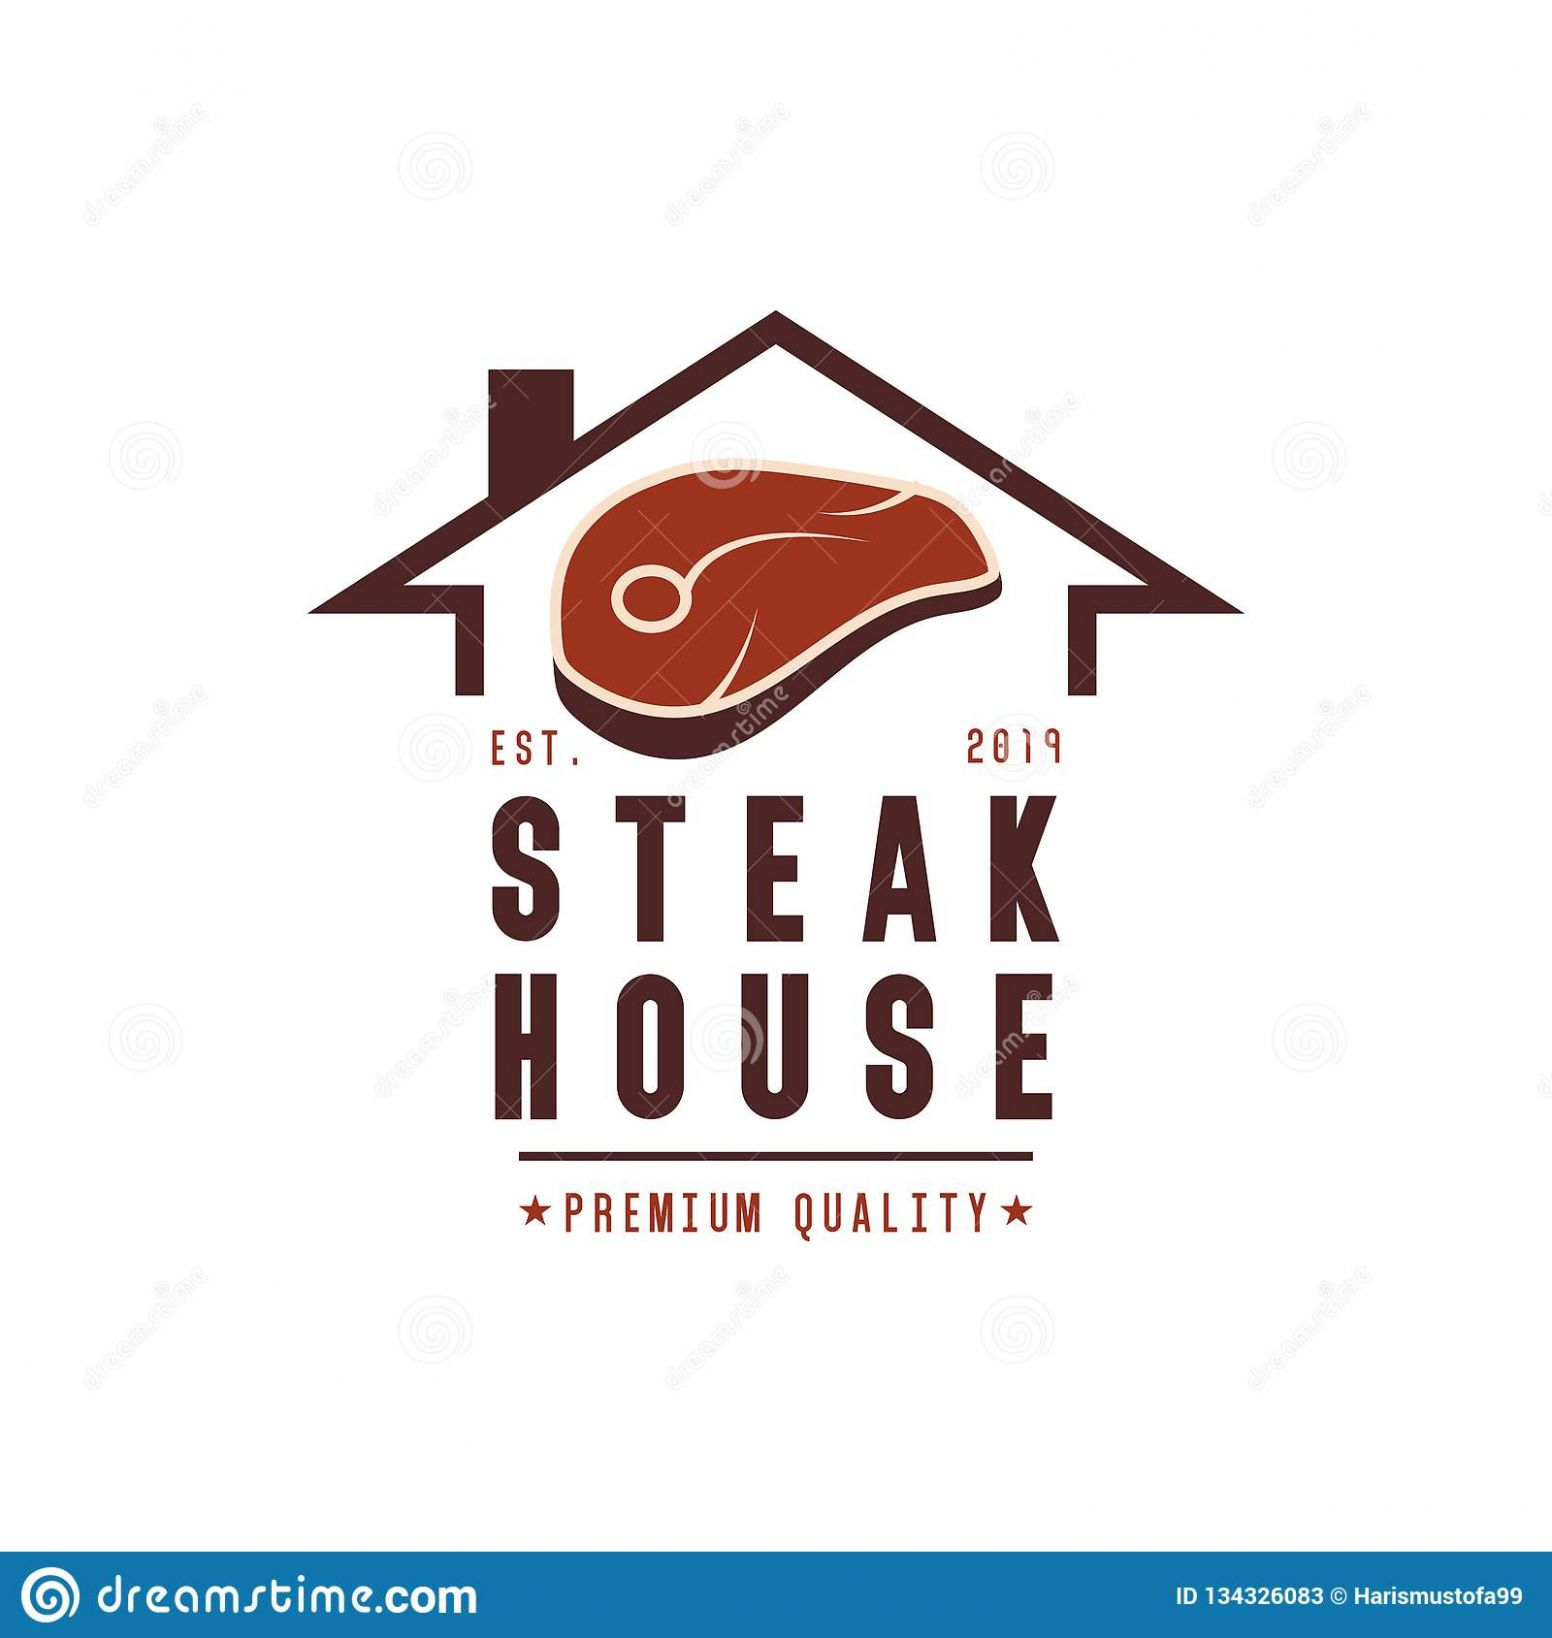 Steak House Logo Design Inspiration Stock Vector - Illustration of ..